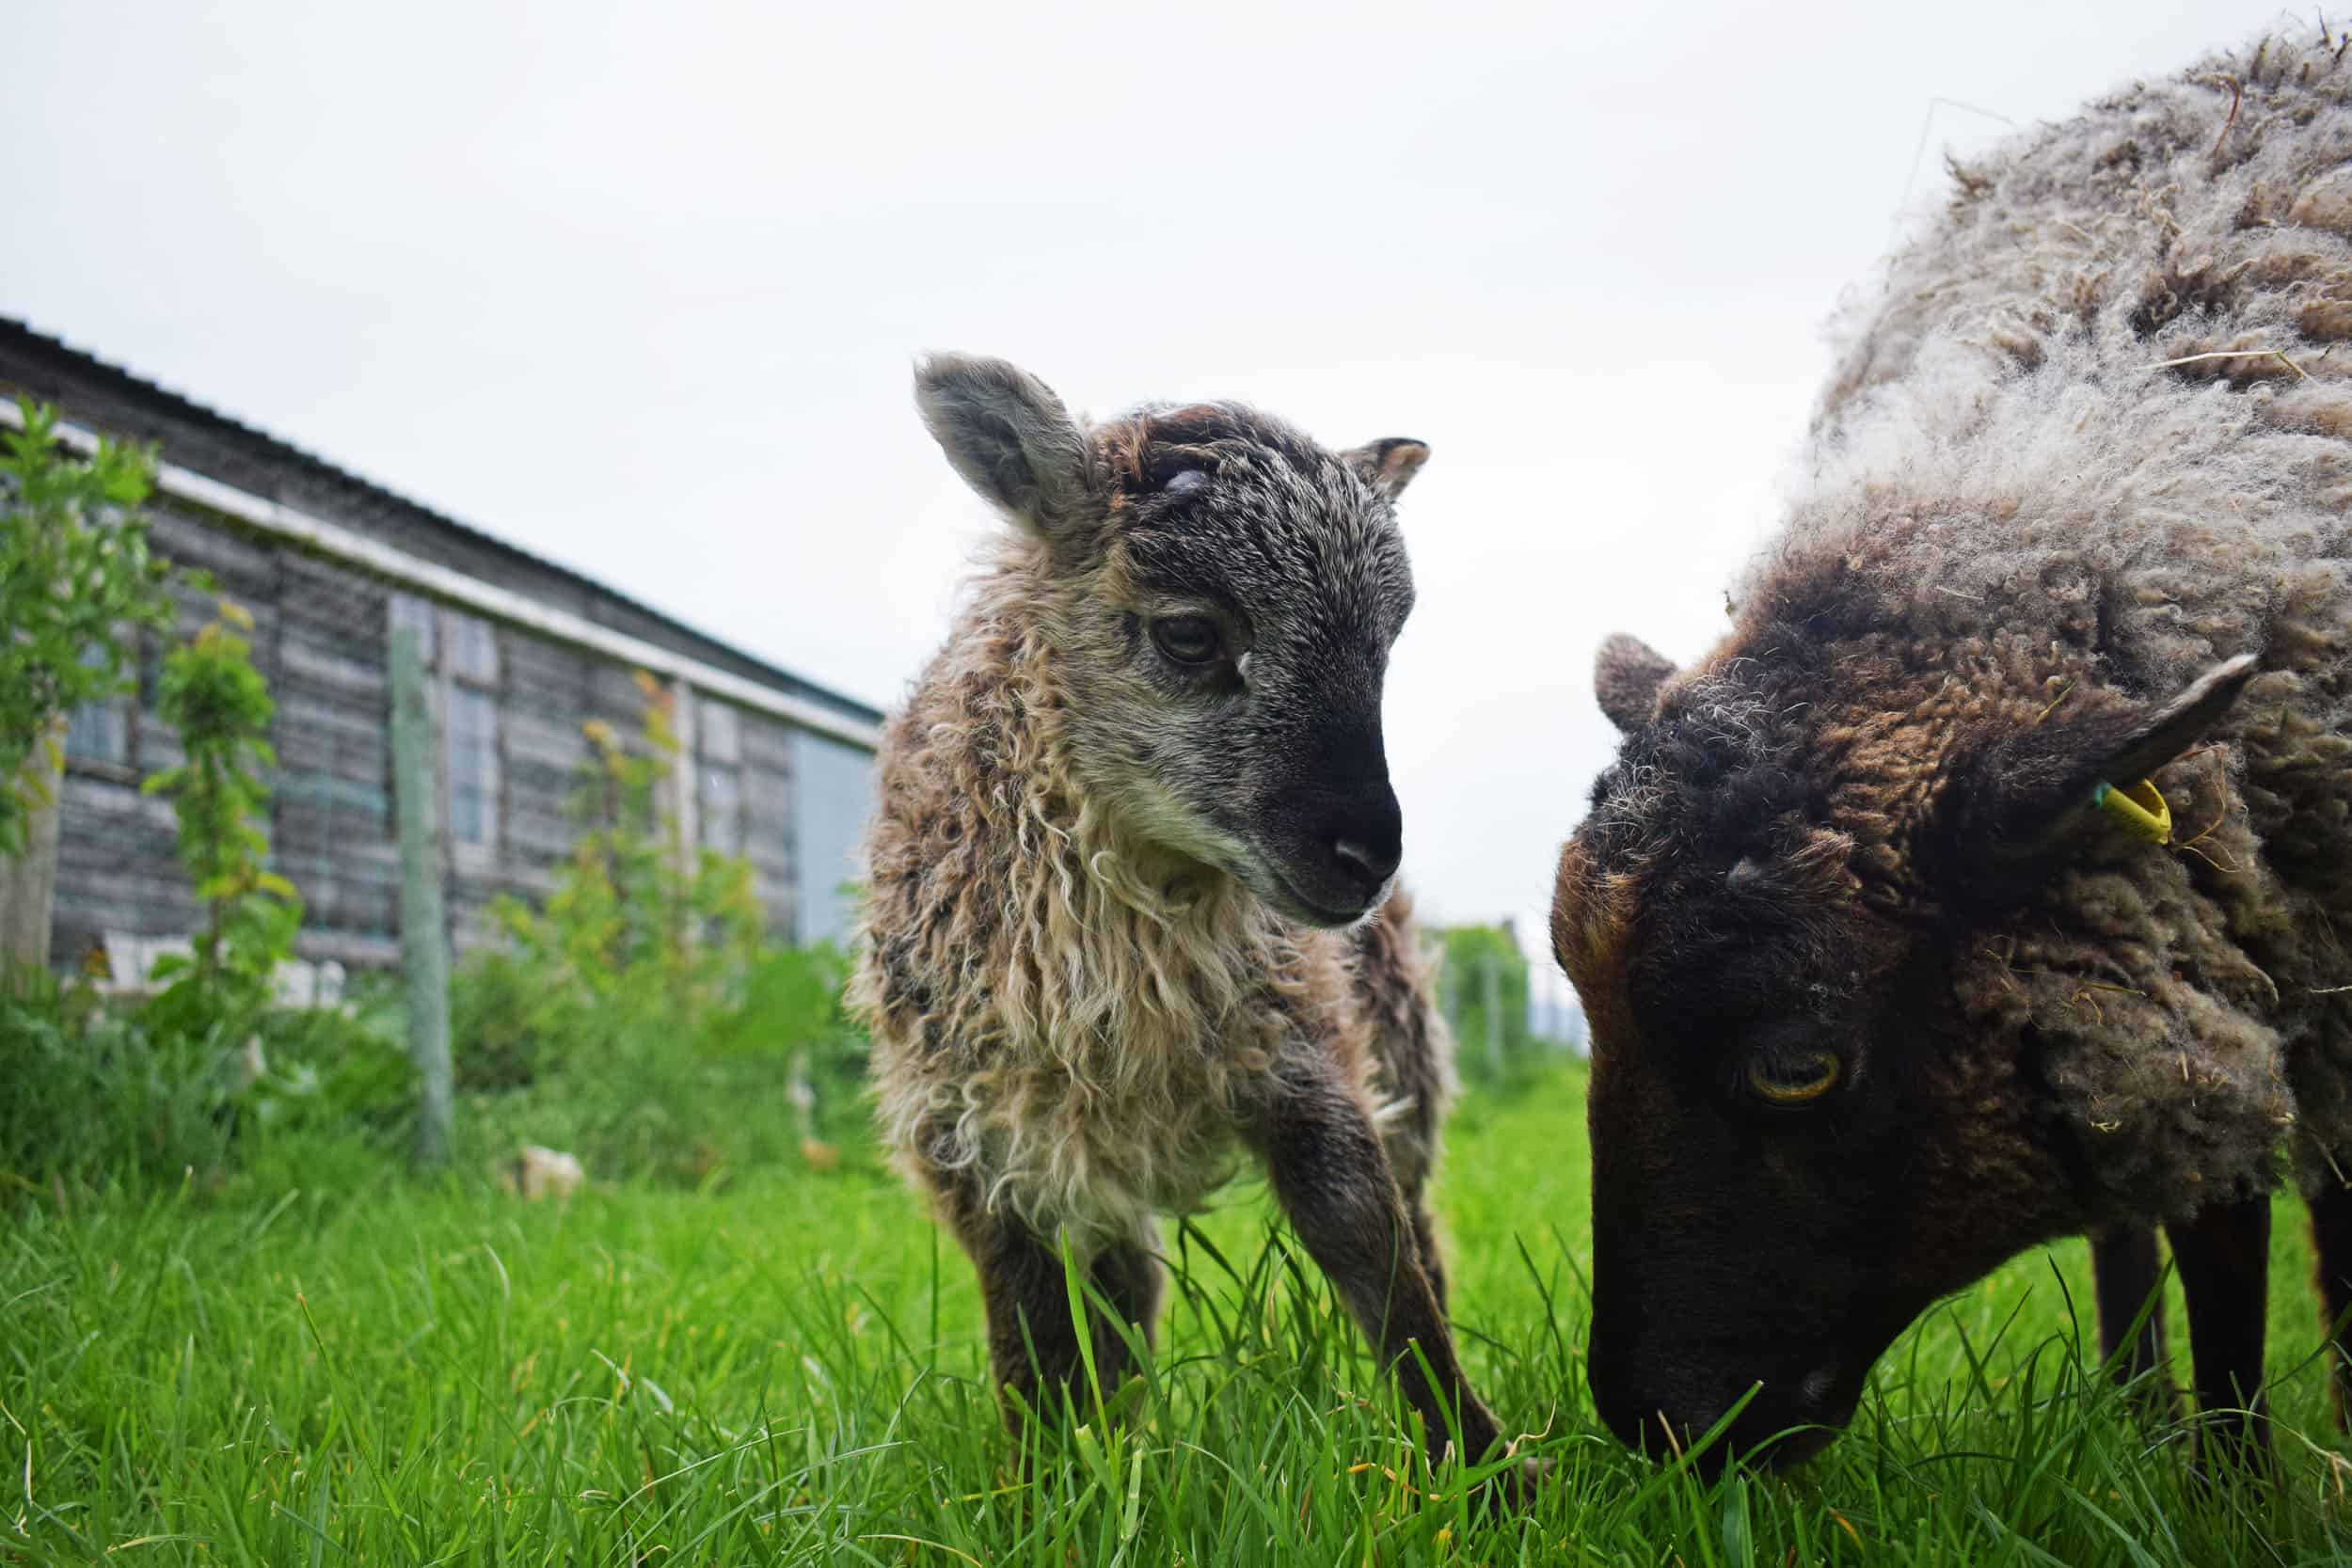 Elder lamb frosted grey mouflon icelandioc cross soay shetland sheep